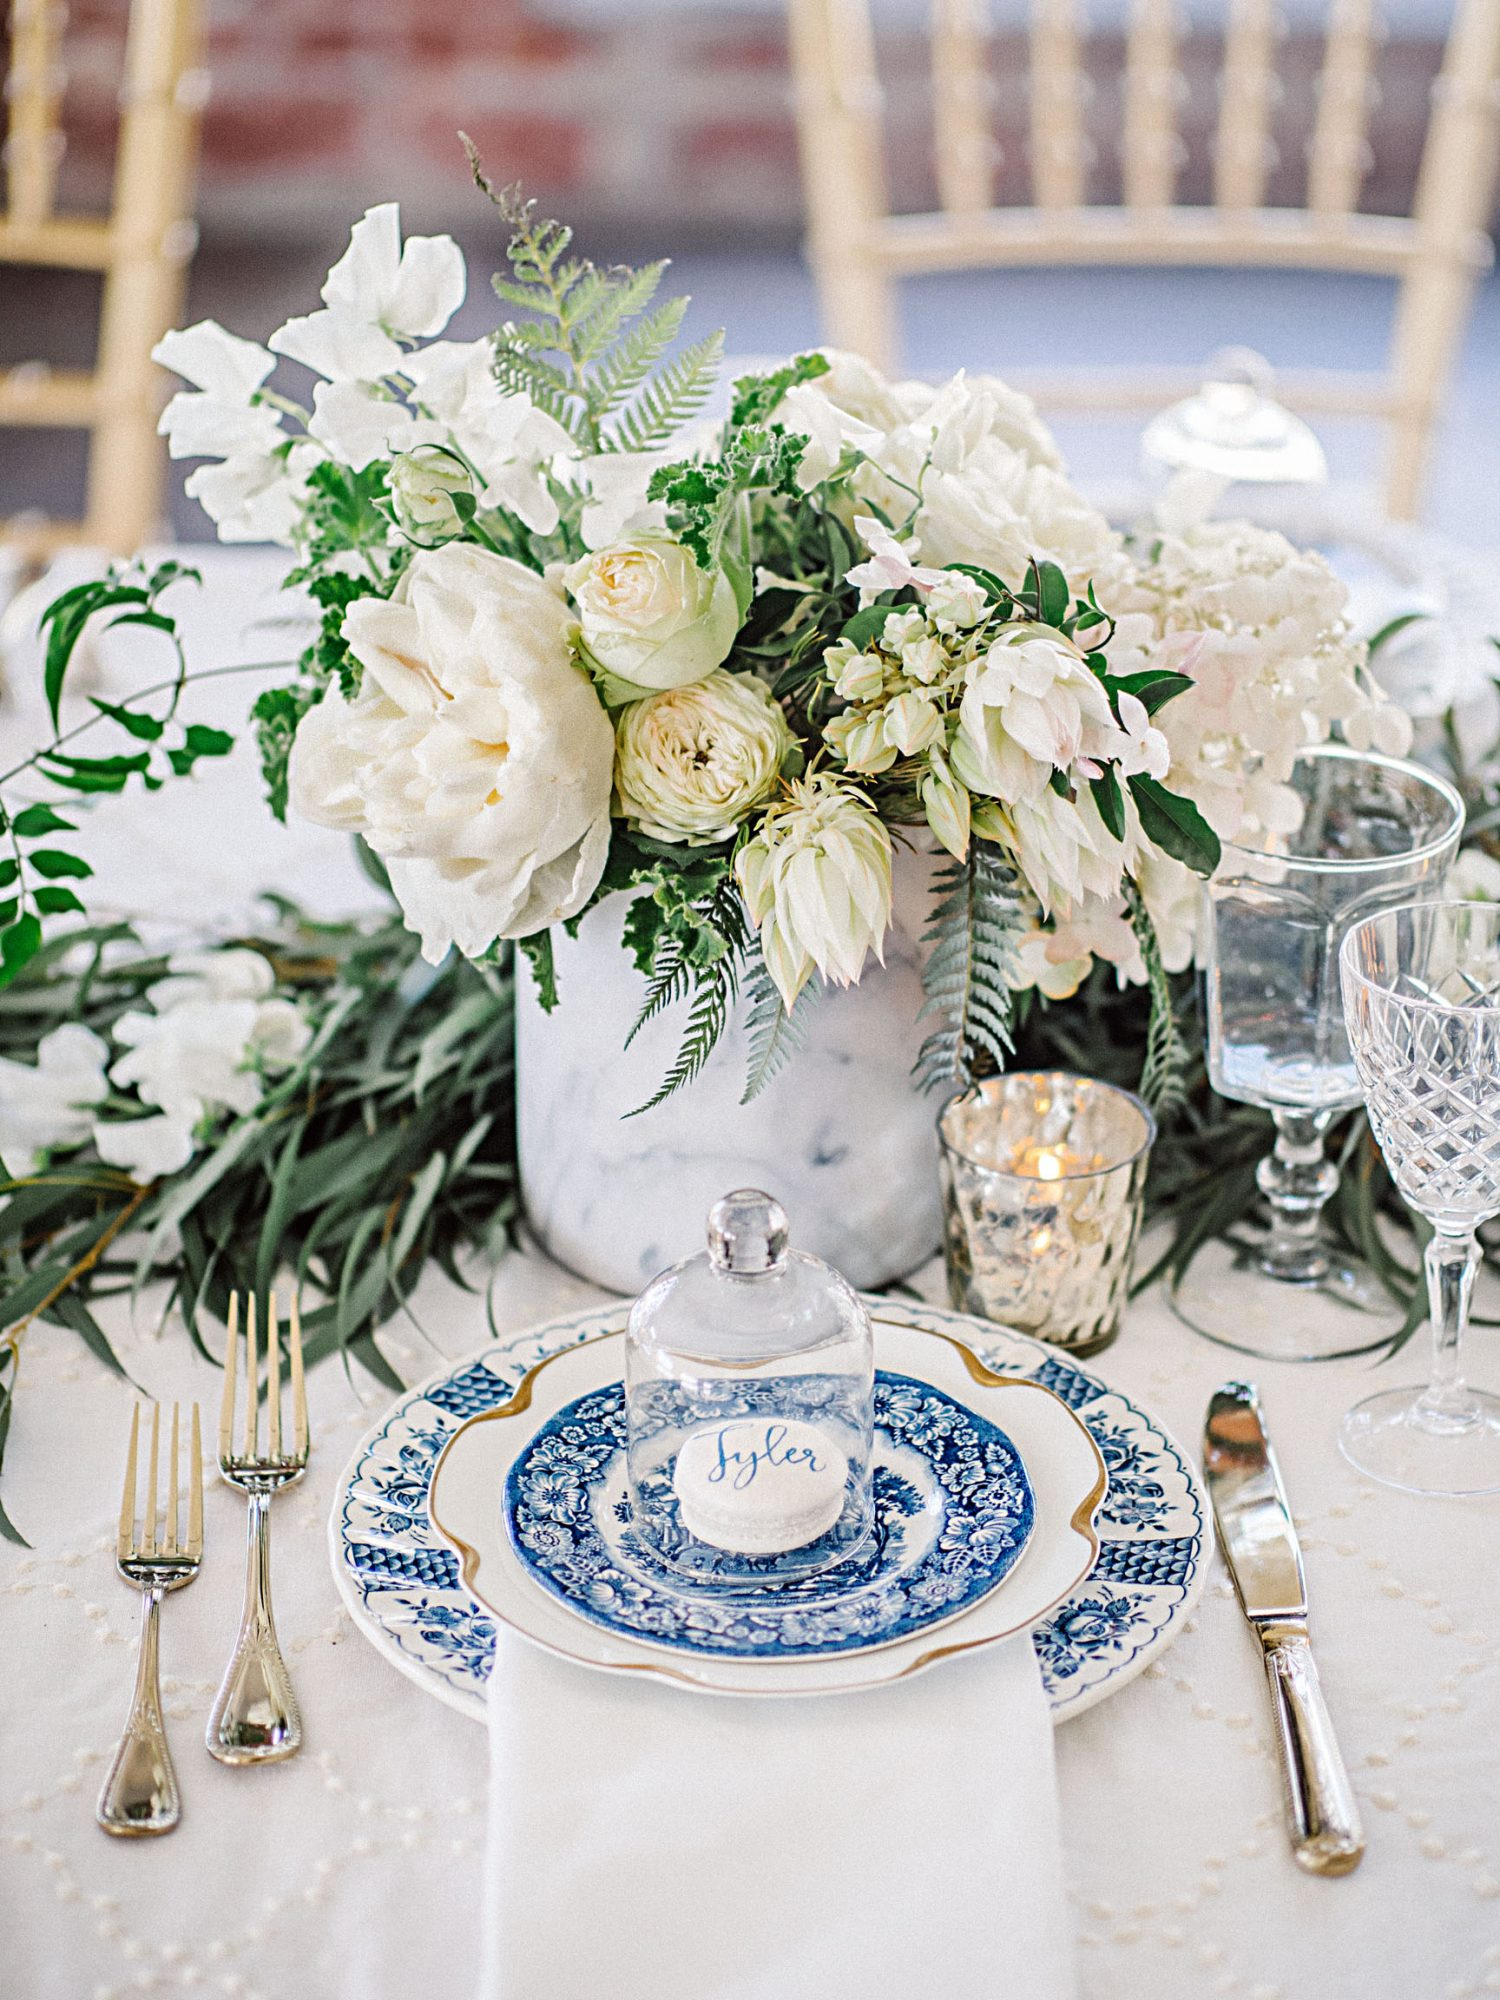 79 White Wedding Centerpieces | Martha Stewart